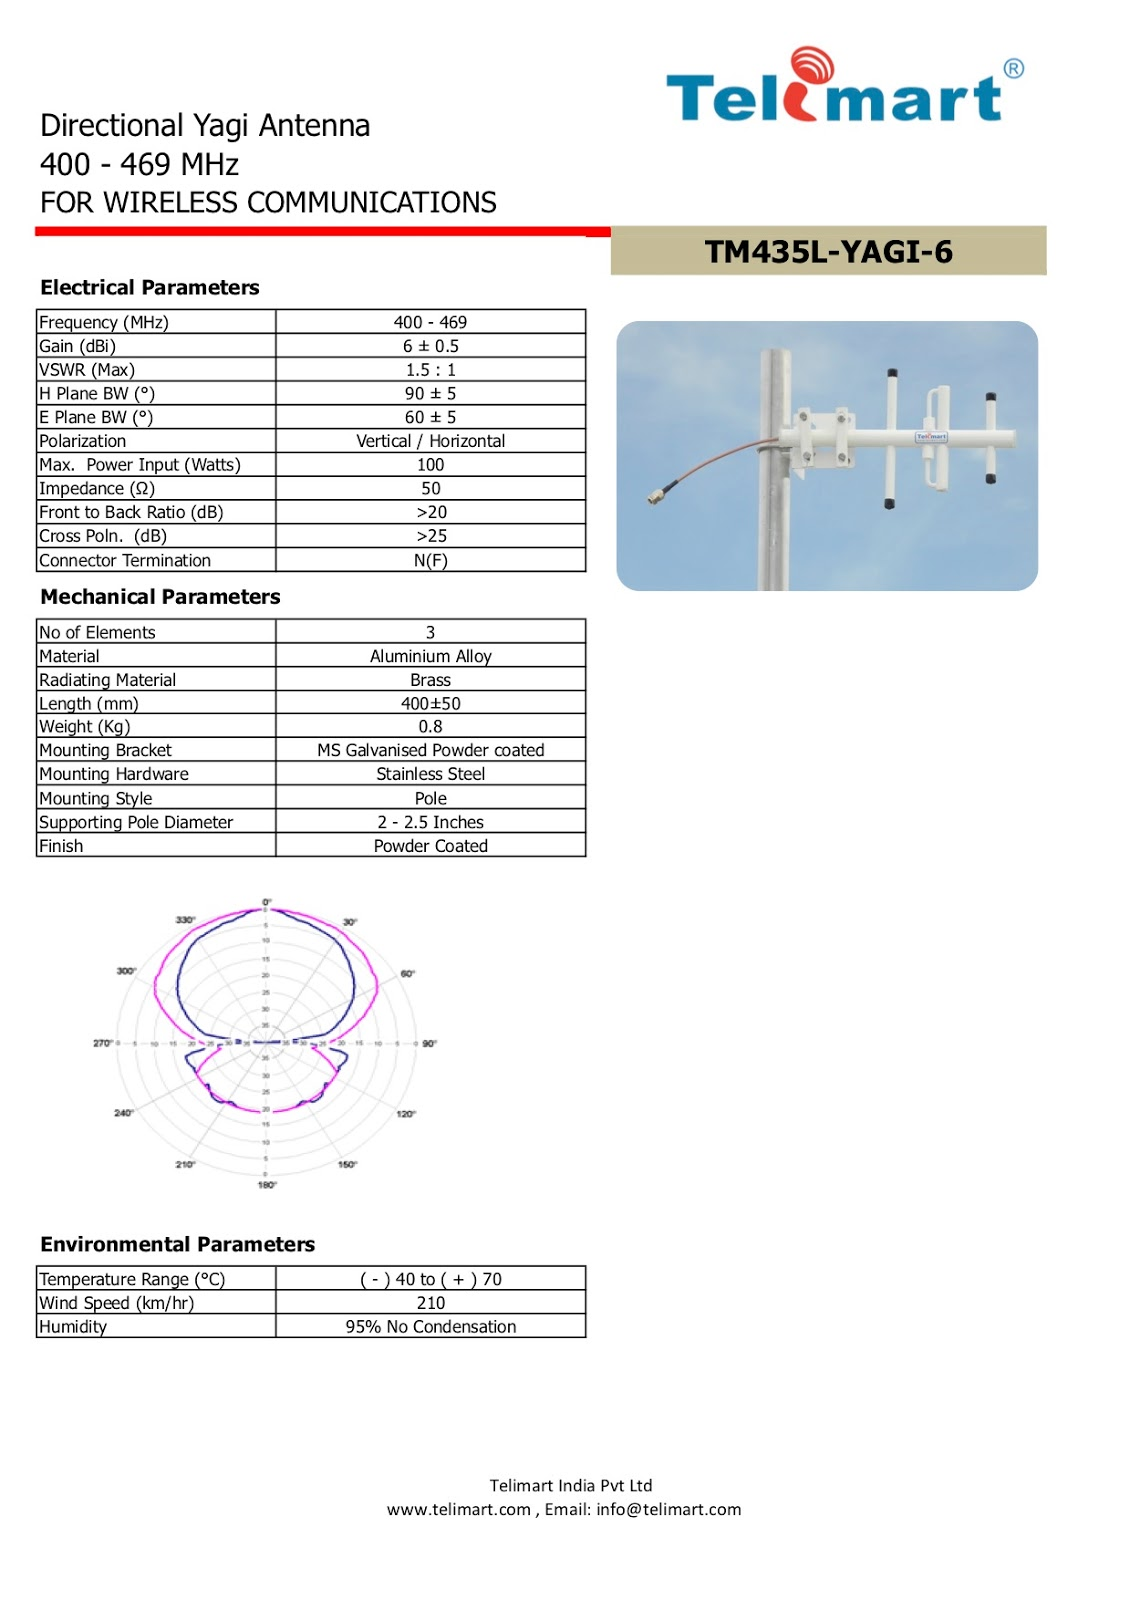 Telimart India Pvt  Ltd  : Telimart UHF Yagi Antennas for